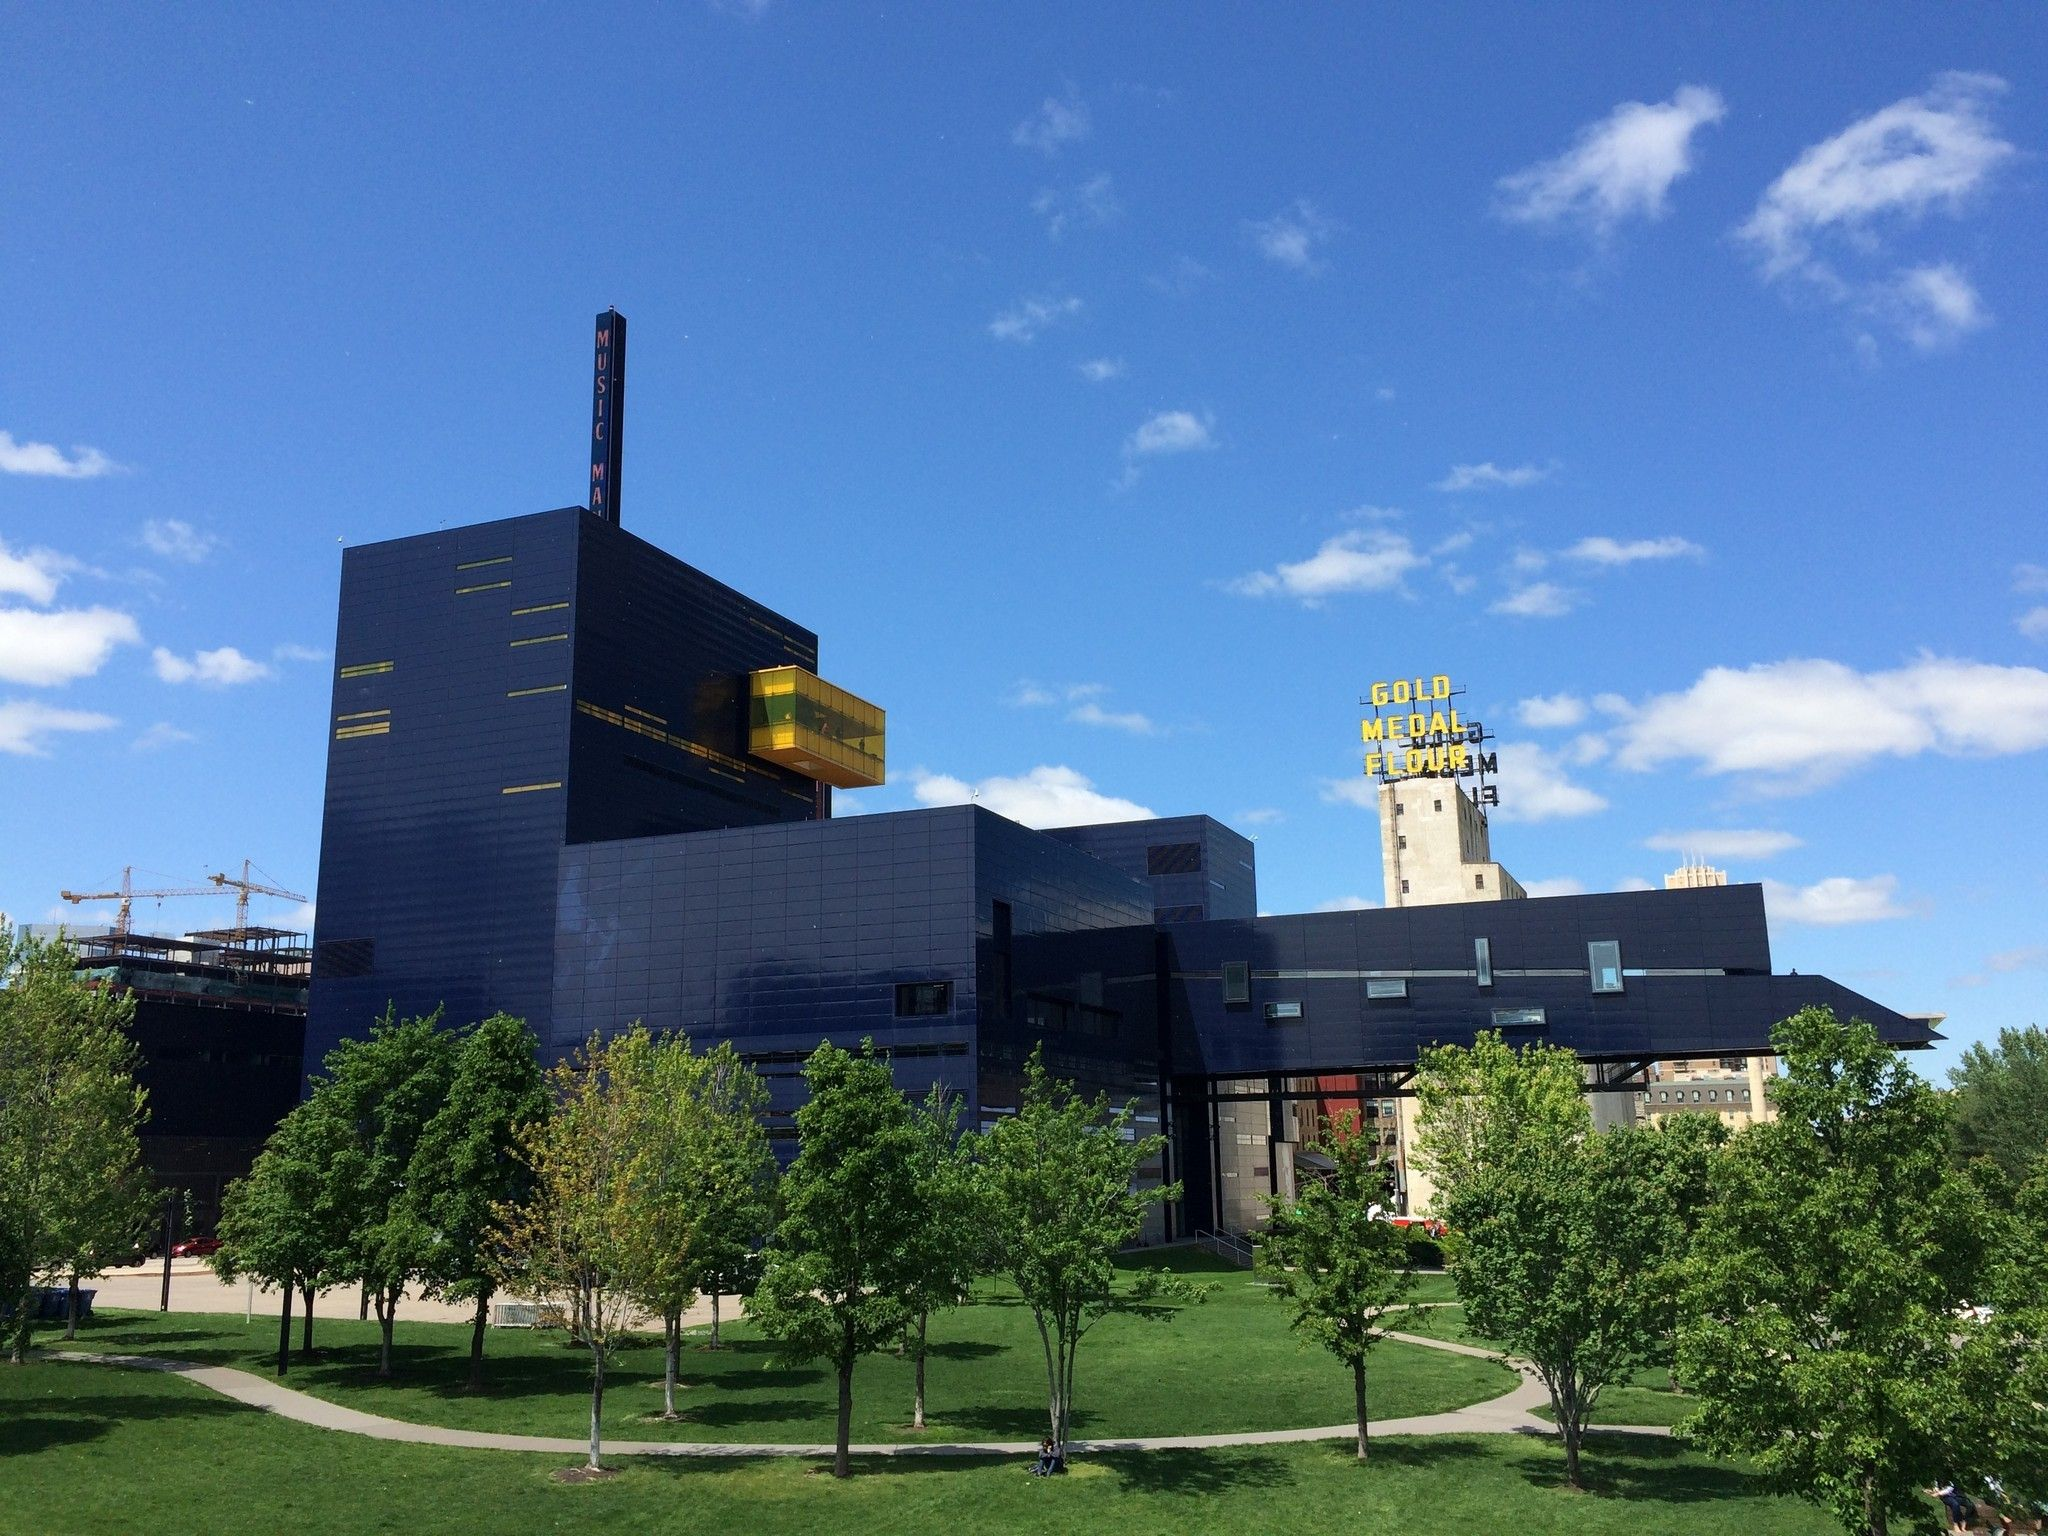 guthrie theater minneapolis - Google Search